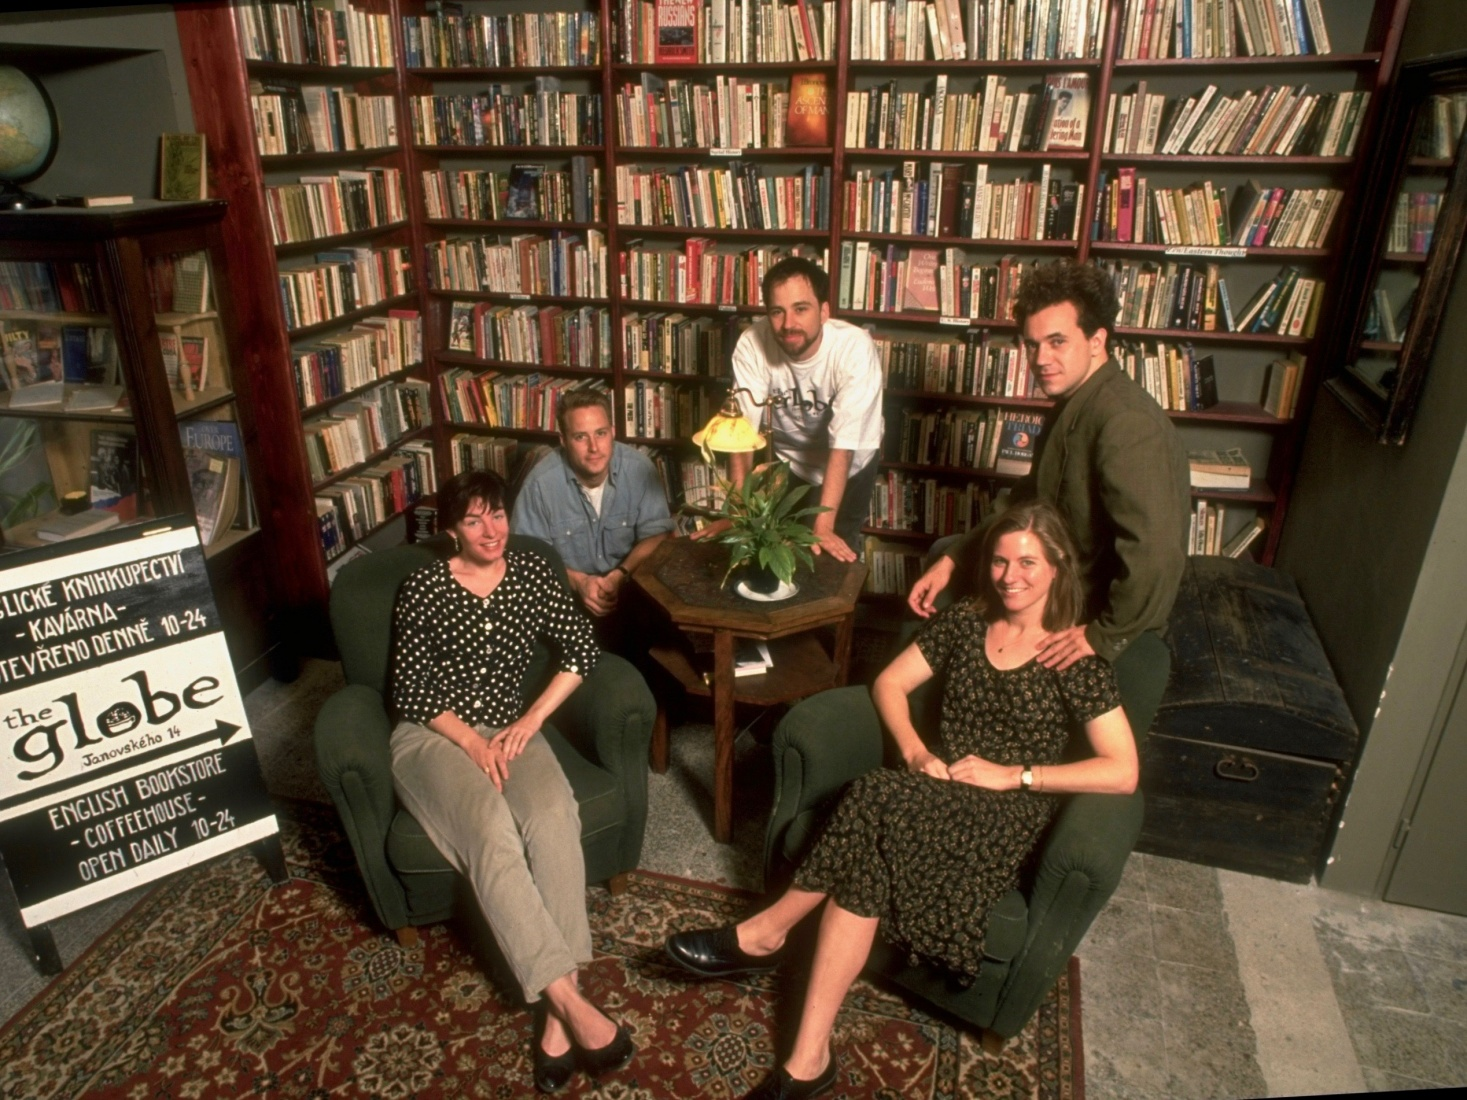 The five original partners, pictured here sometime shortly after opening in July 1993 (from right to left): Markéta Janků, Scott Rogers, Mark Baker, Jasper Bear and Maura Griffin, in the Globe Bookstore in Holešovice, Prague, Czech Republic.